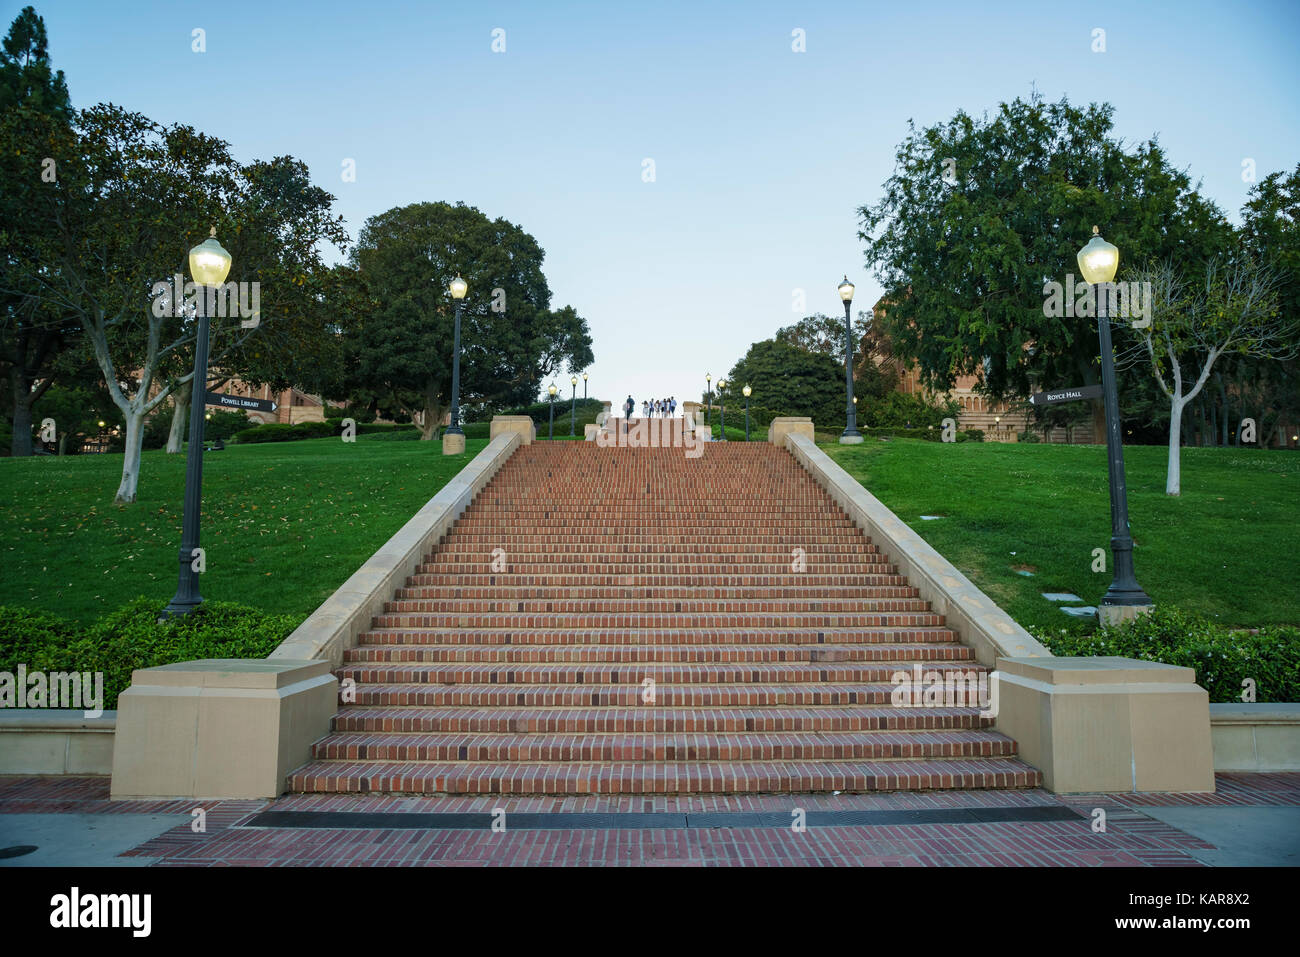 Westwood, JUN 21: UCLA long stairs on JUN 21, 2017 at Westwood, Los Angeles County, California, United States - Stock Image